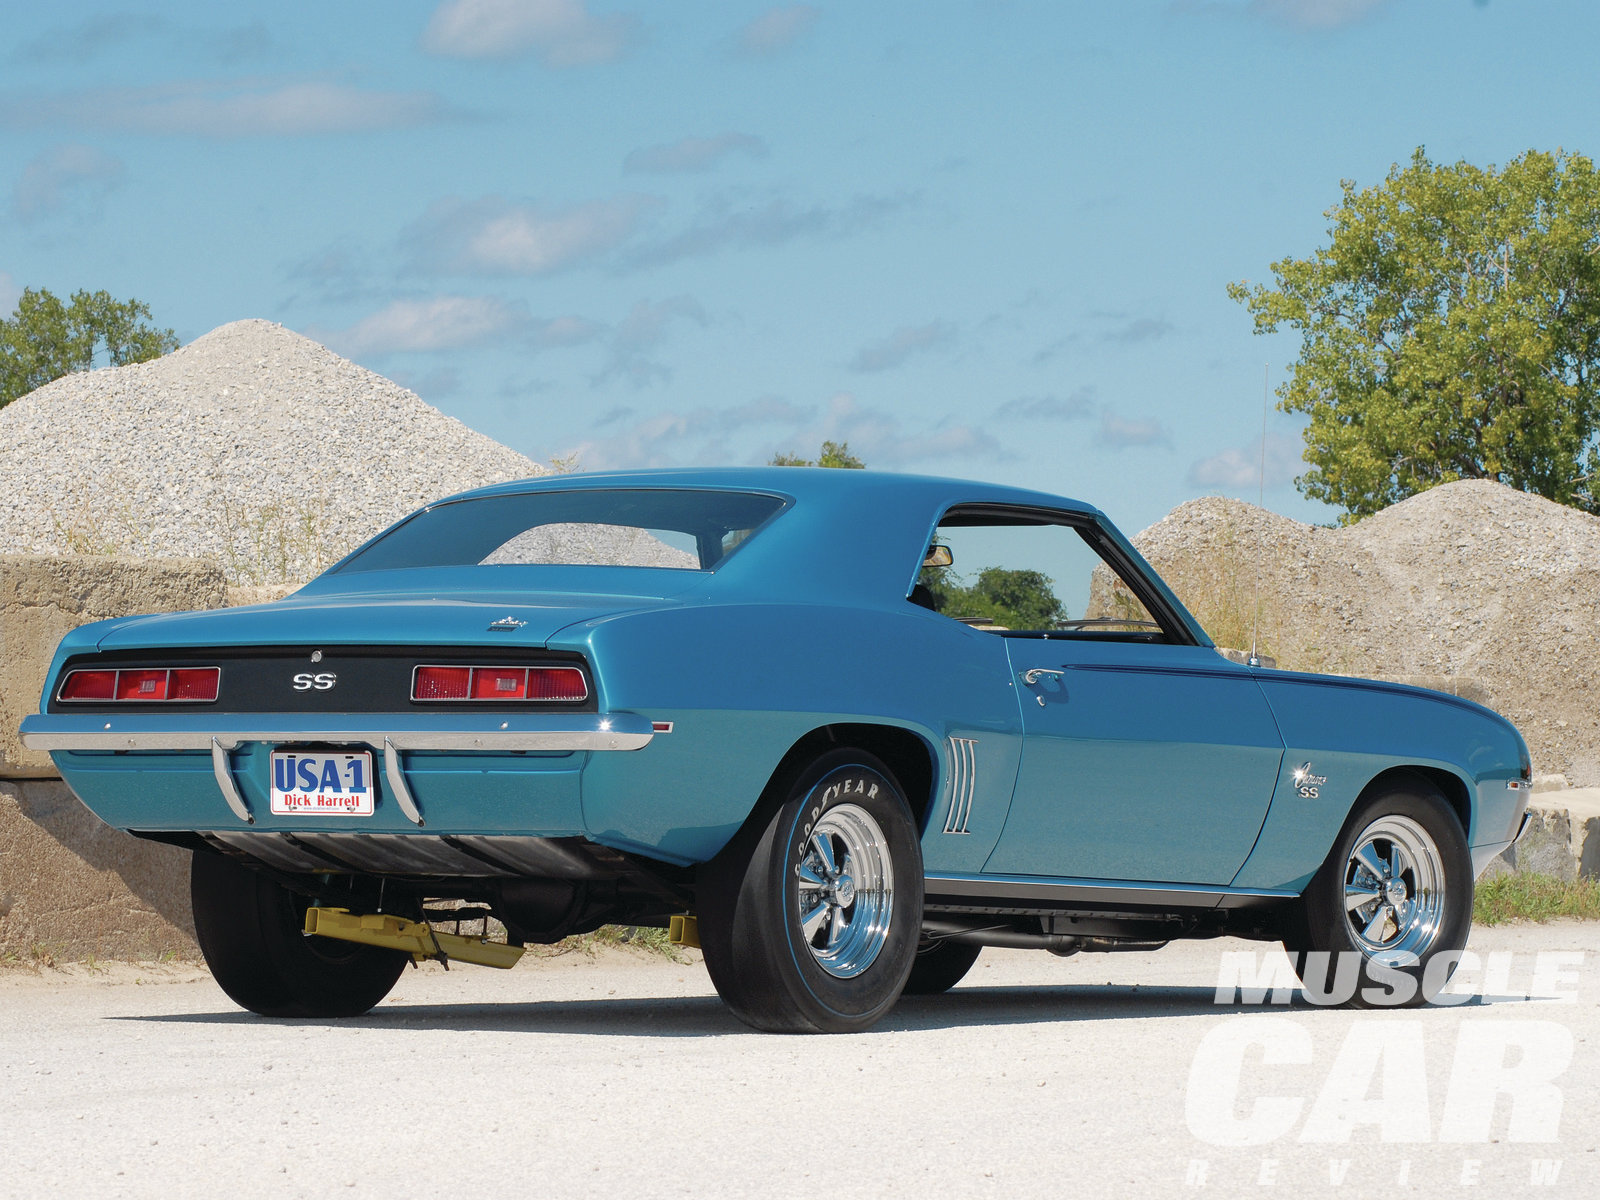 This Le Mans Blue beauty is one of 10 '69 SS396 Camaros converted that year by the Dick Harrell Performance Center.